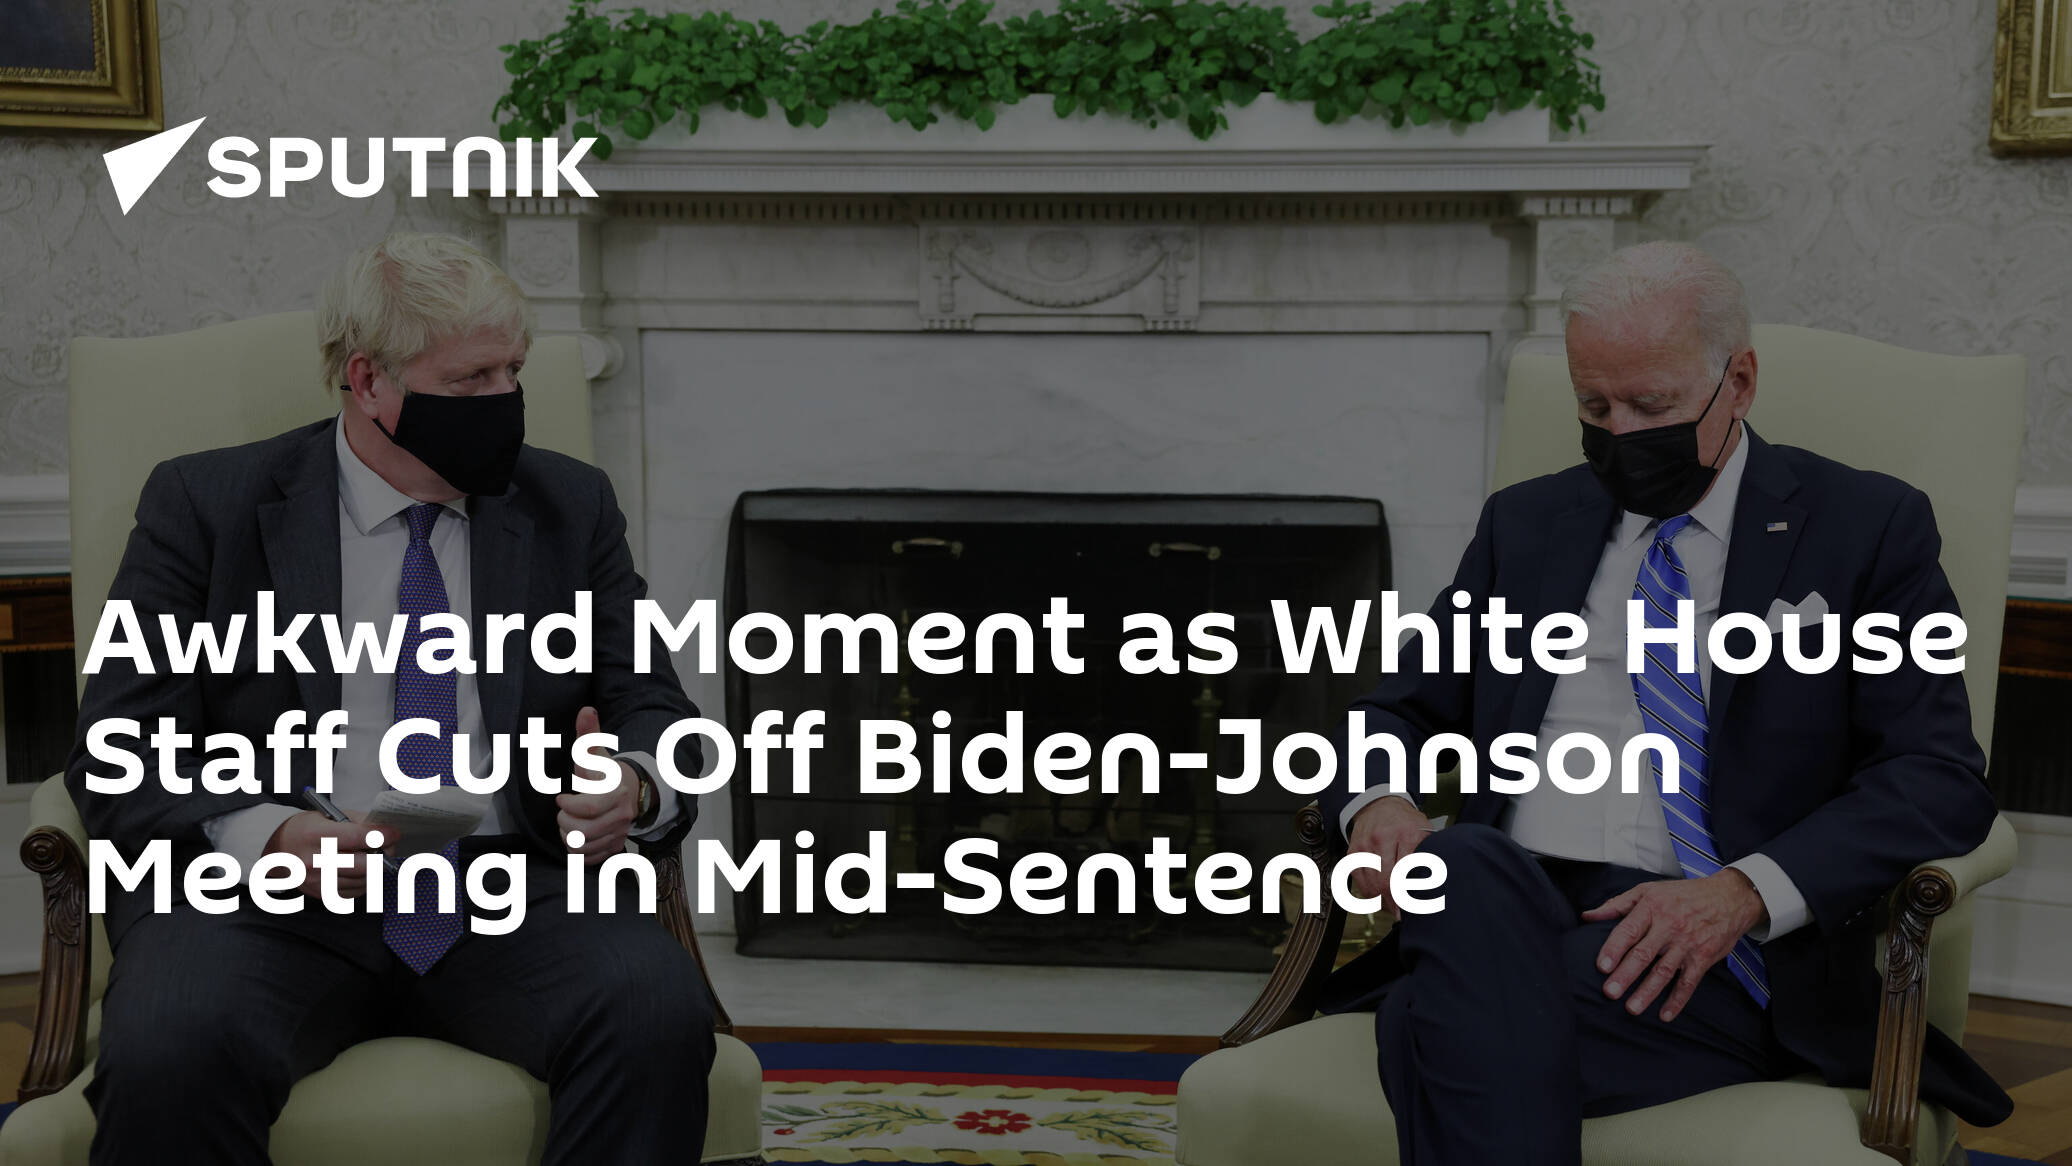 Awkward Moment as White House Staff Cuts Off Biden-Johnson Meeting in Mid-Sentence